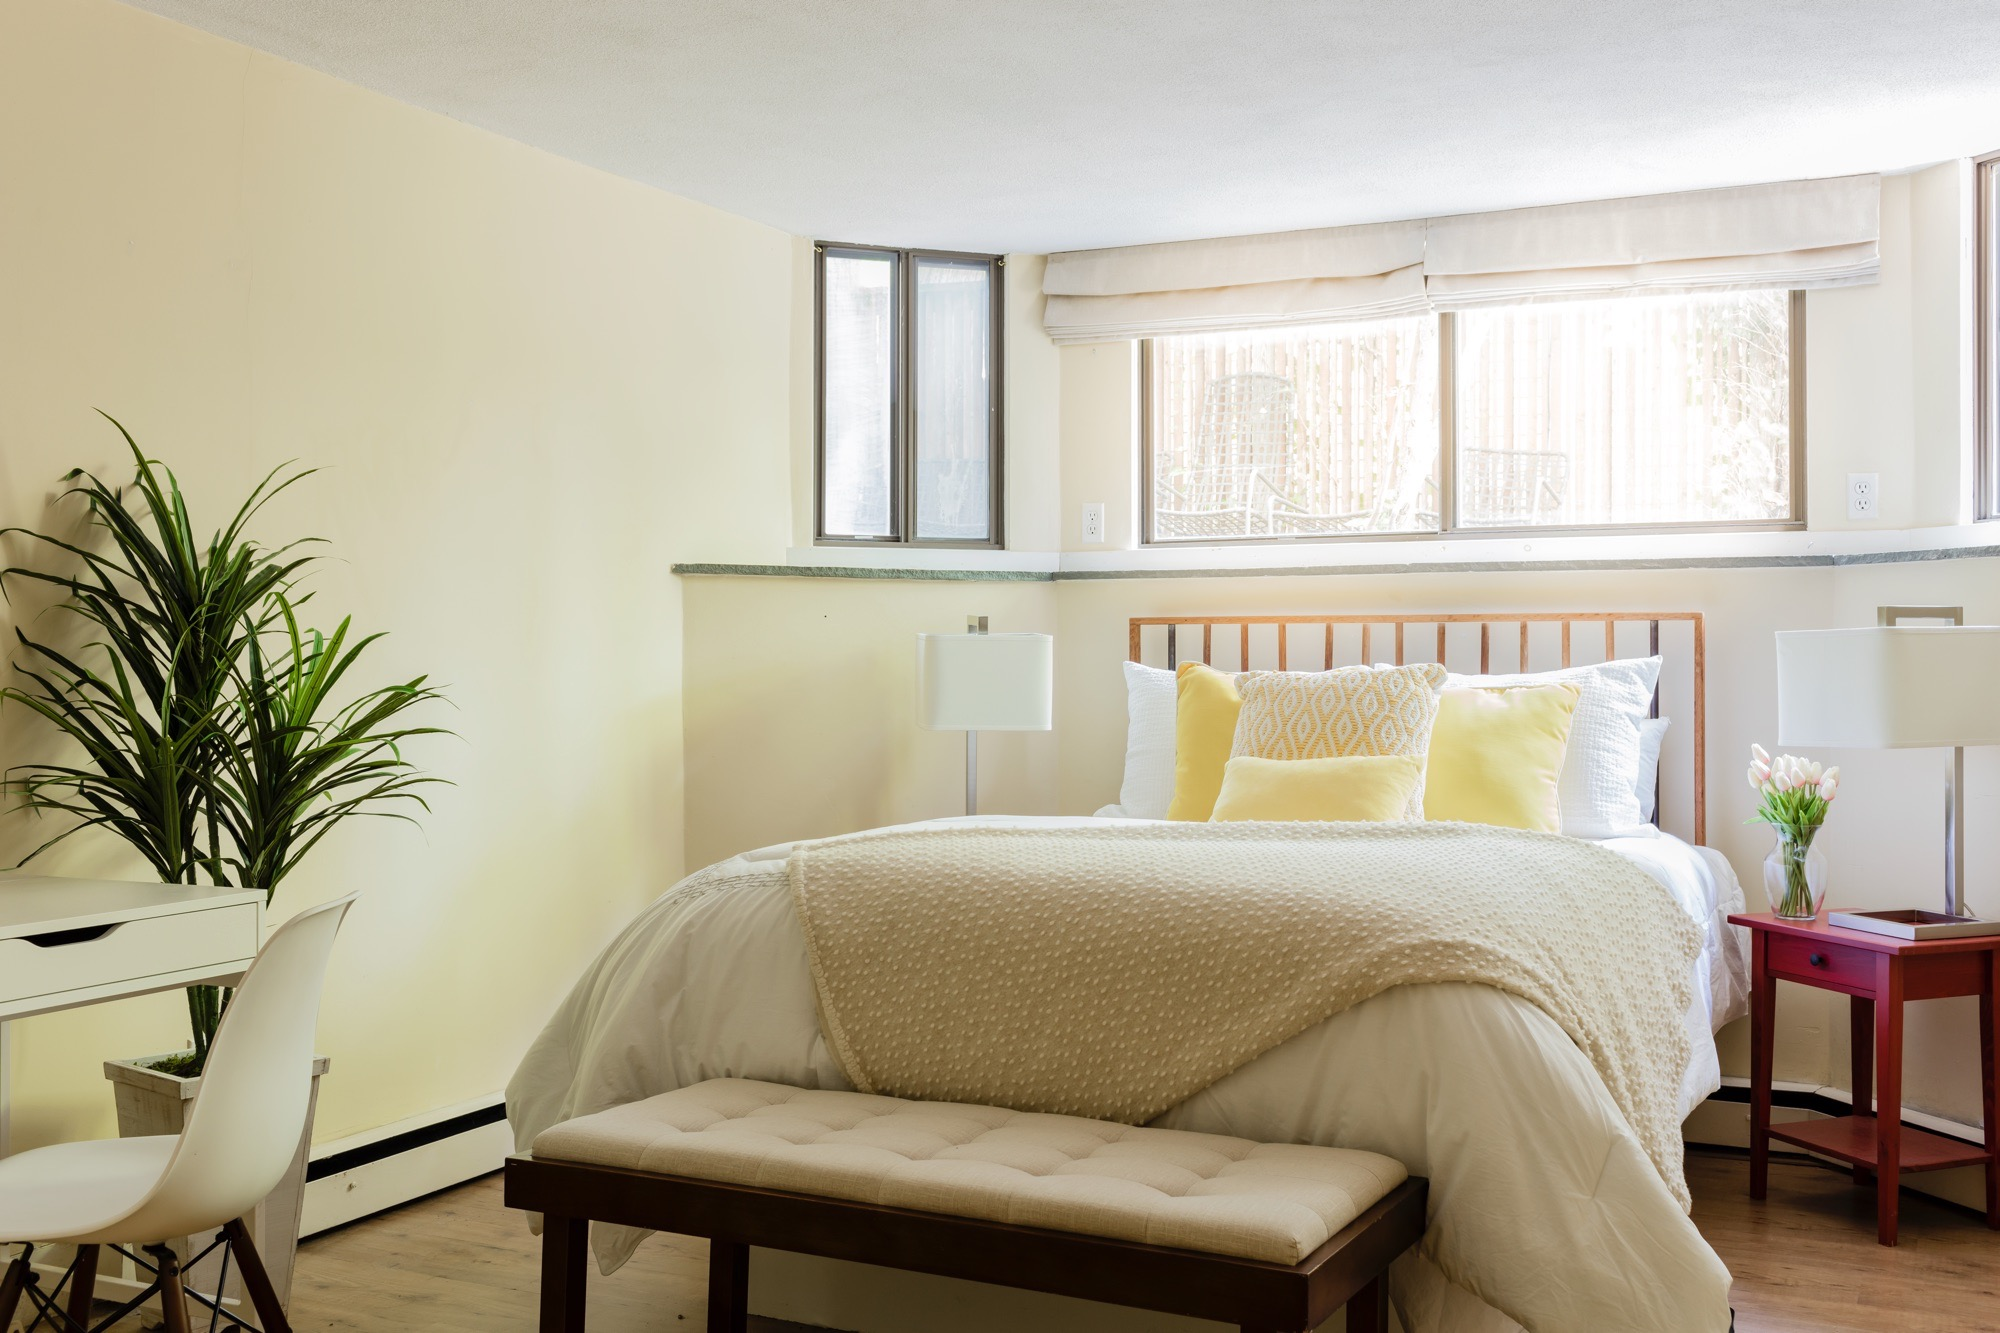 44AH apartment bedroom1.jpg